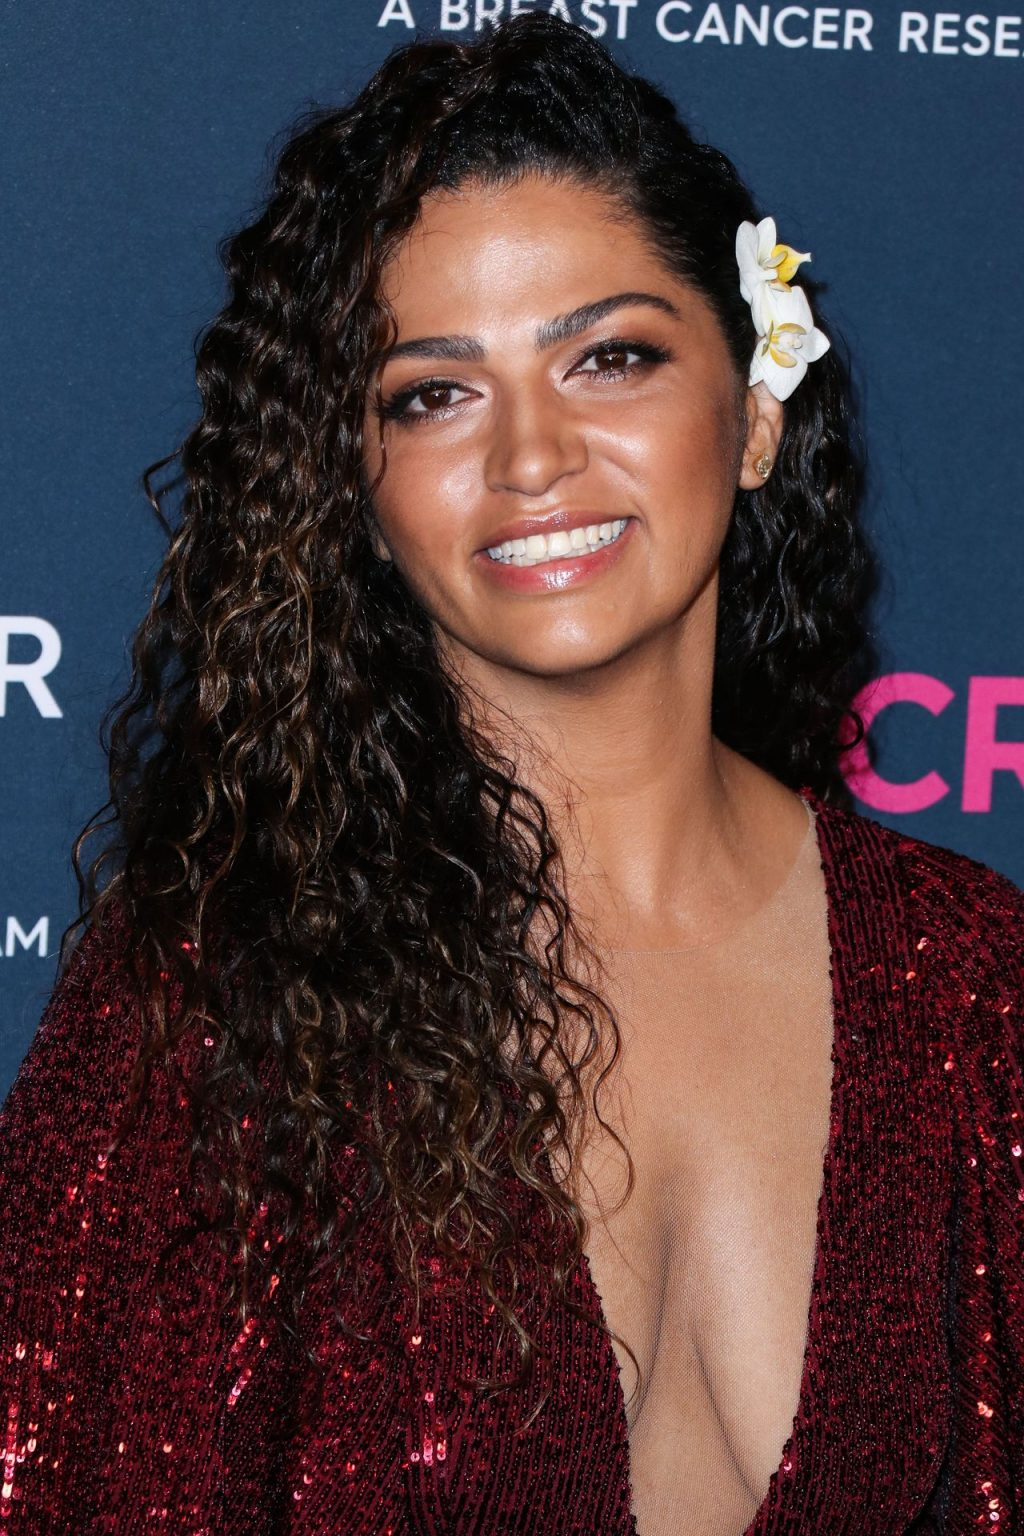 Camila Alves McConaughey Cleavage